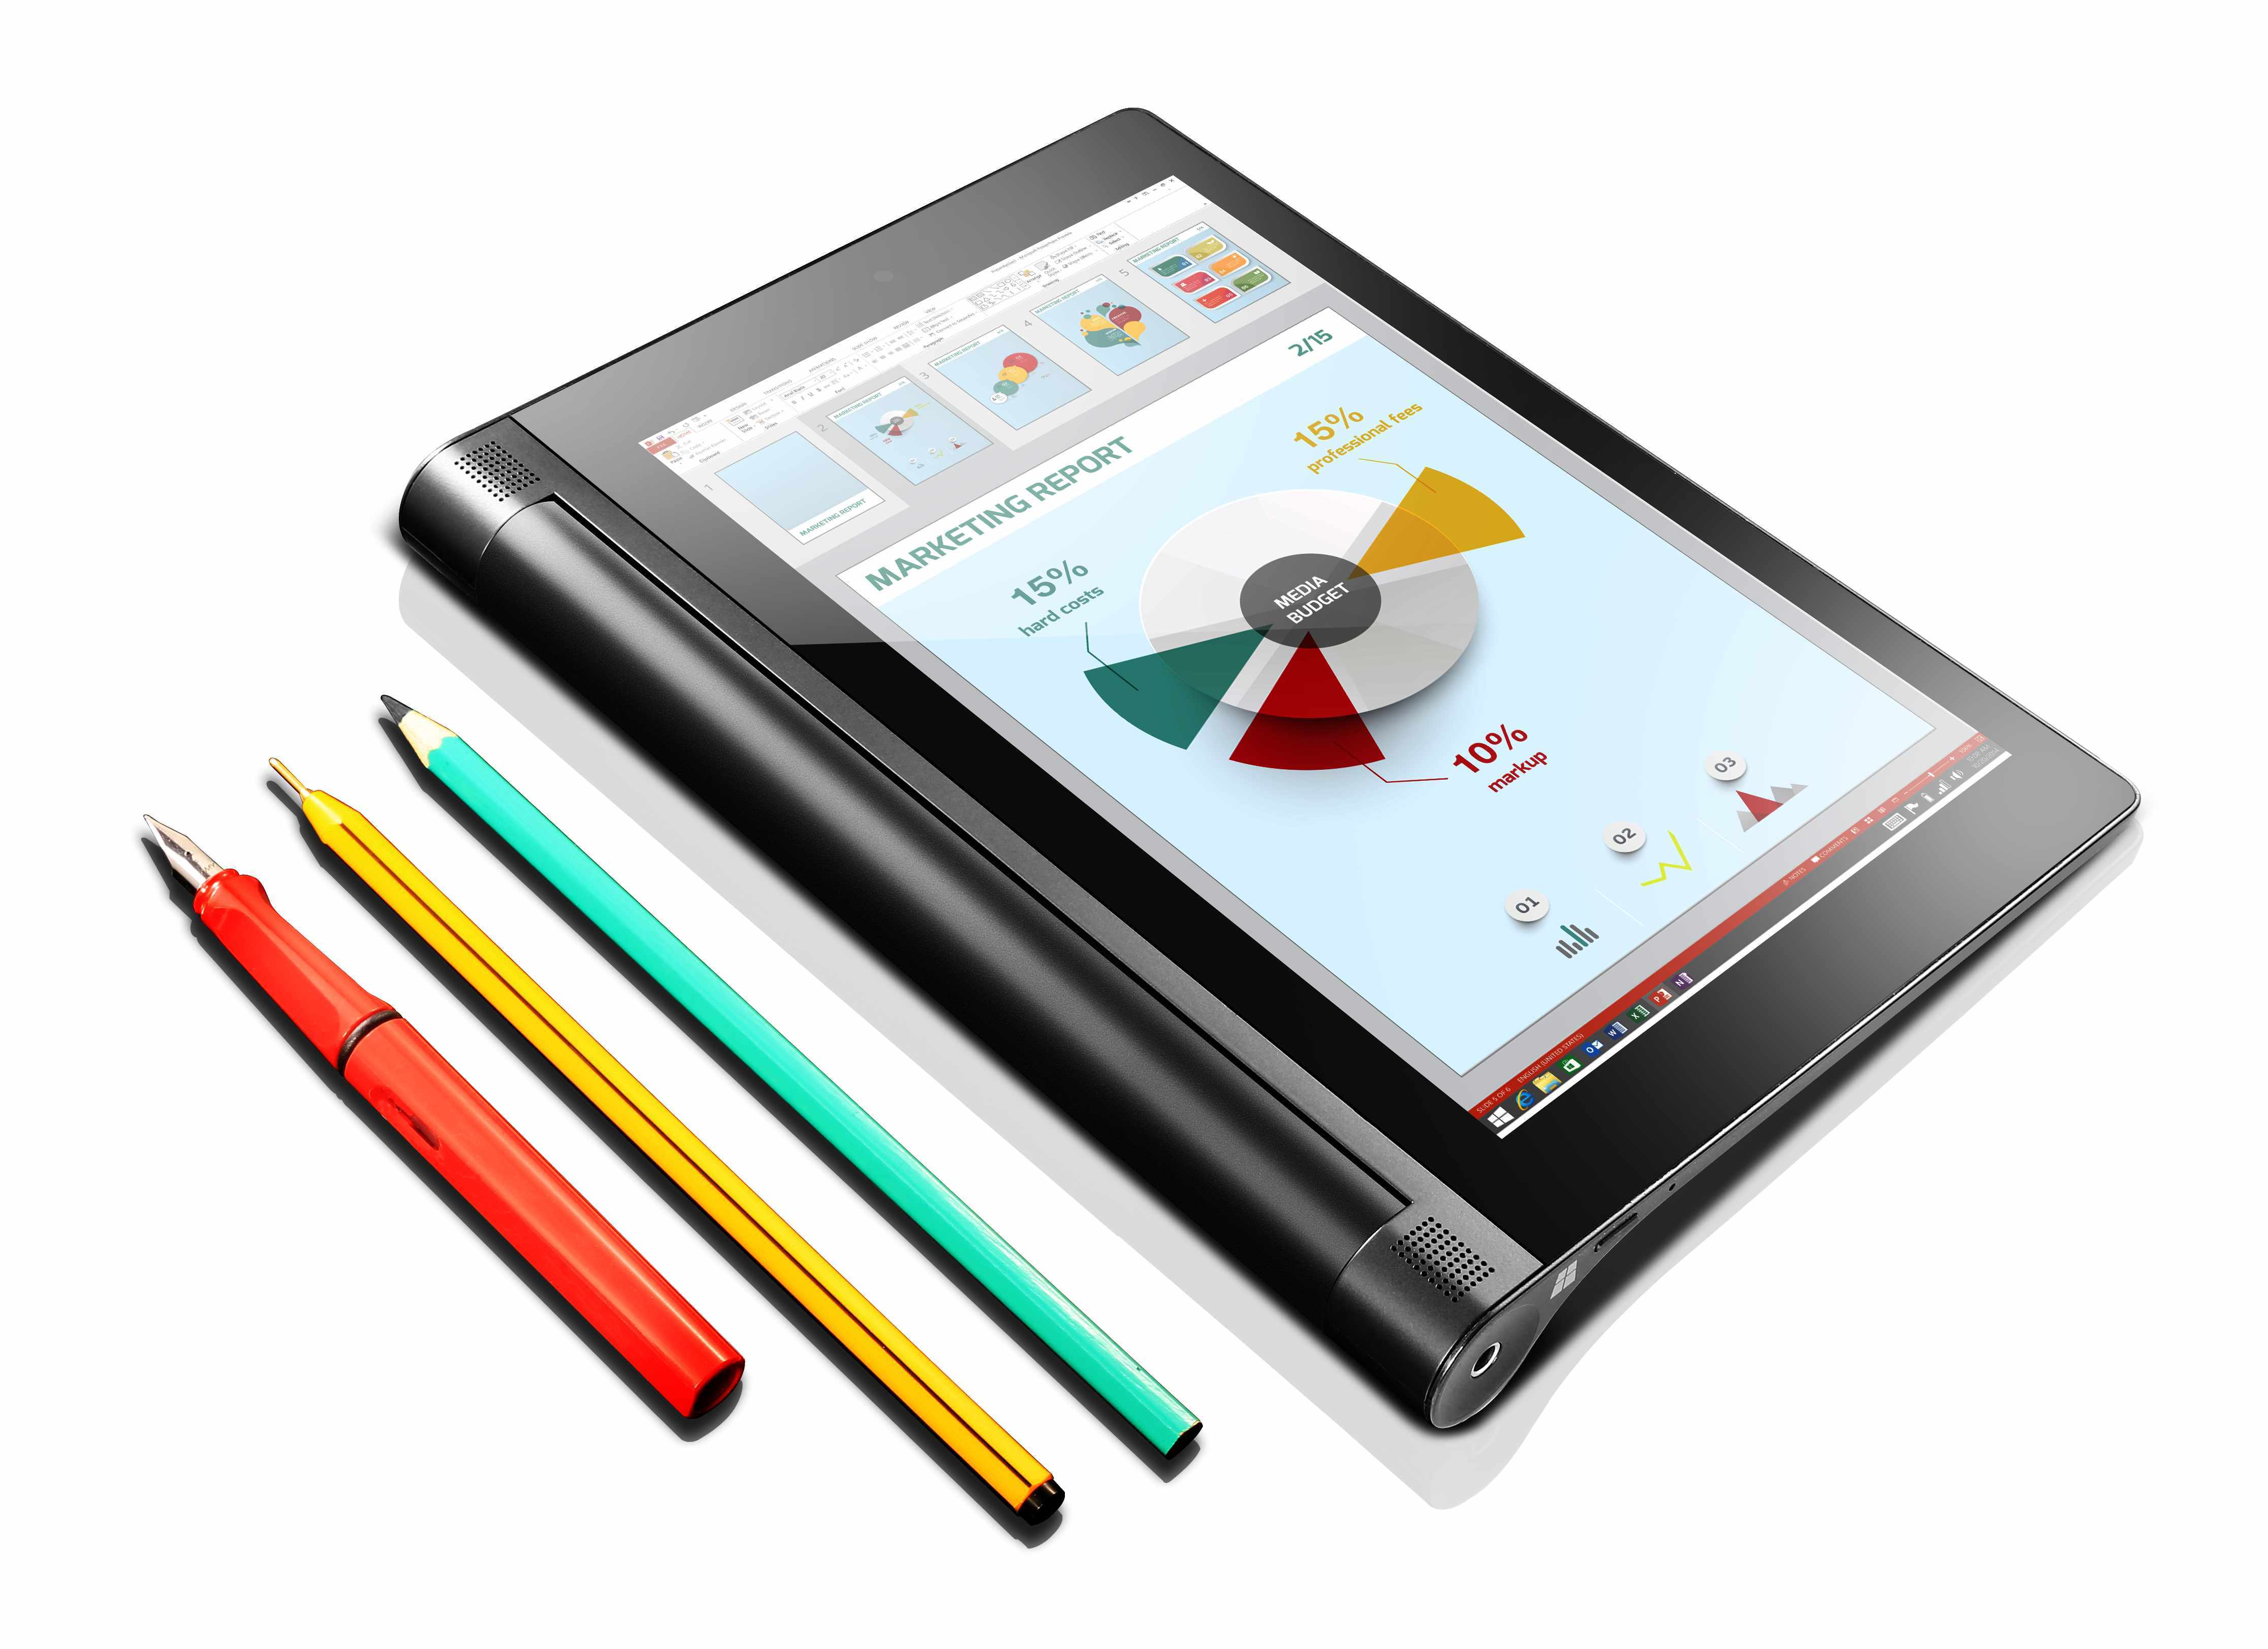 Lenovo yoga tablet 2 anypen 8 inch review versatile but small for serious windows use pcworld - Six uses old tablet ...